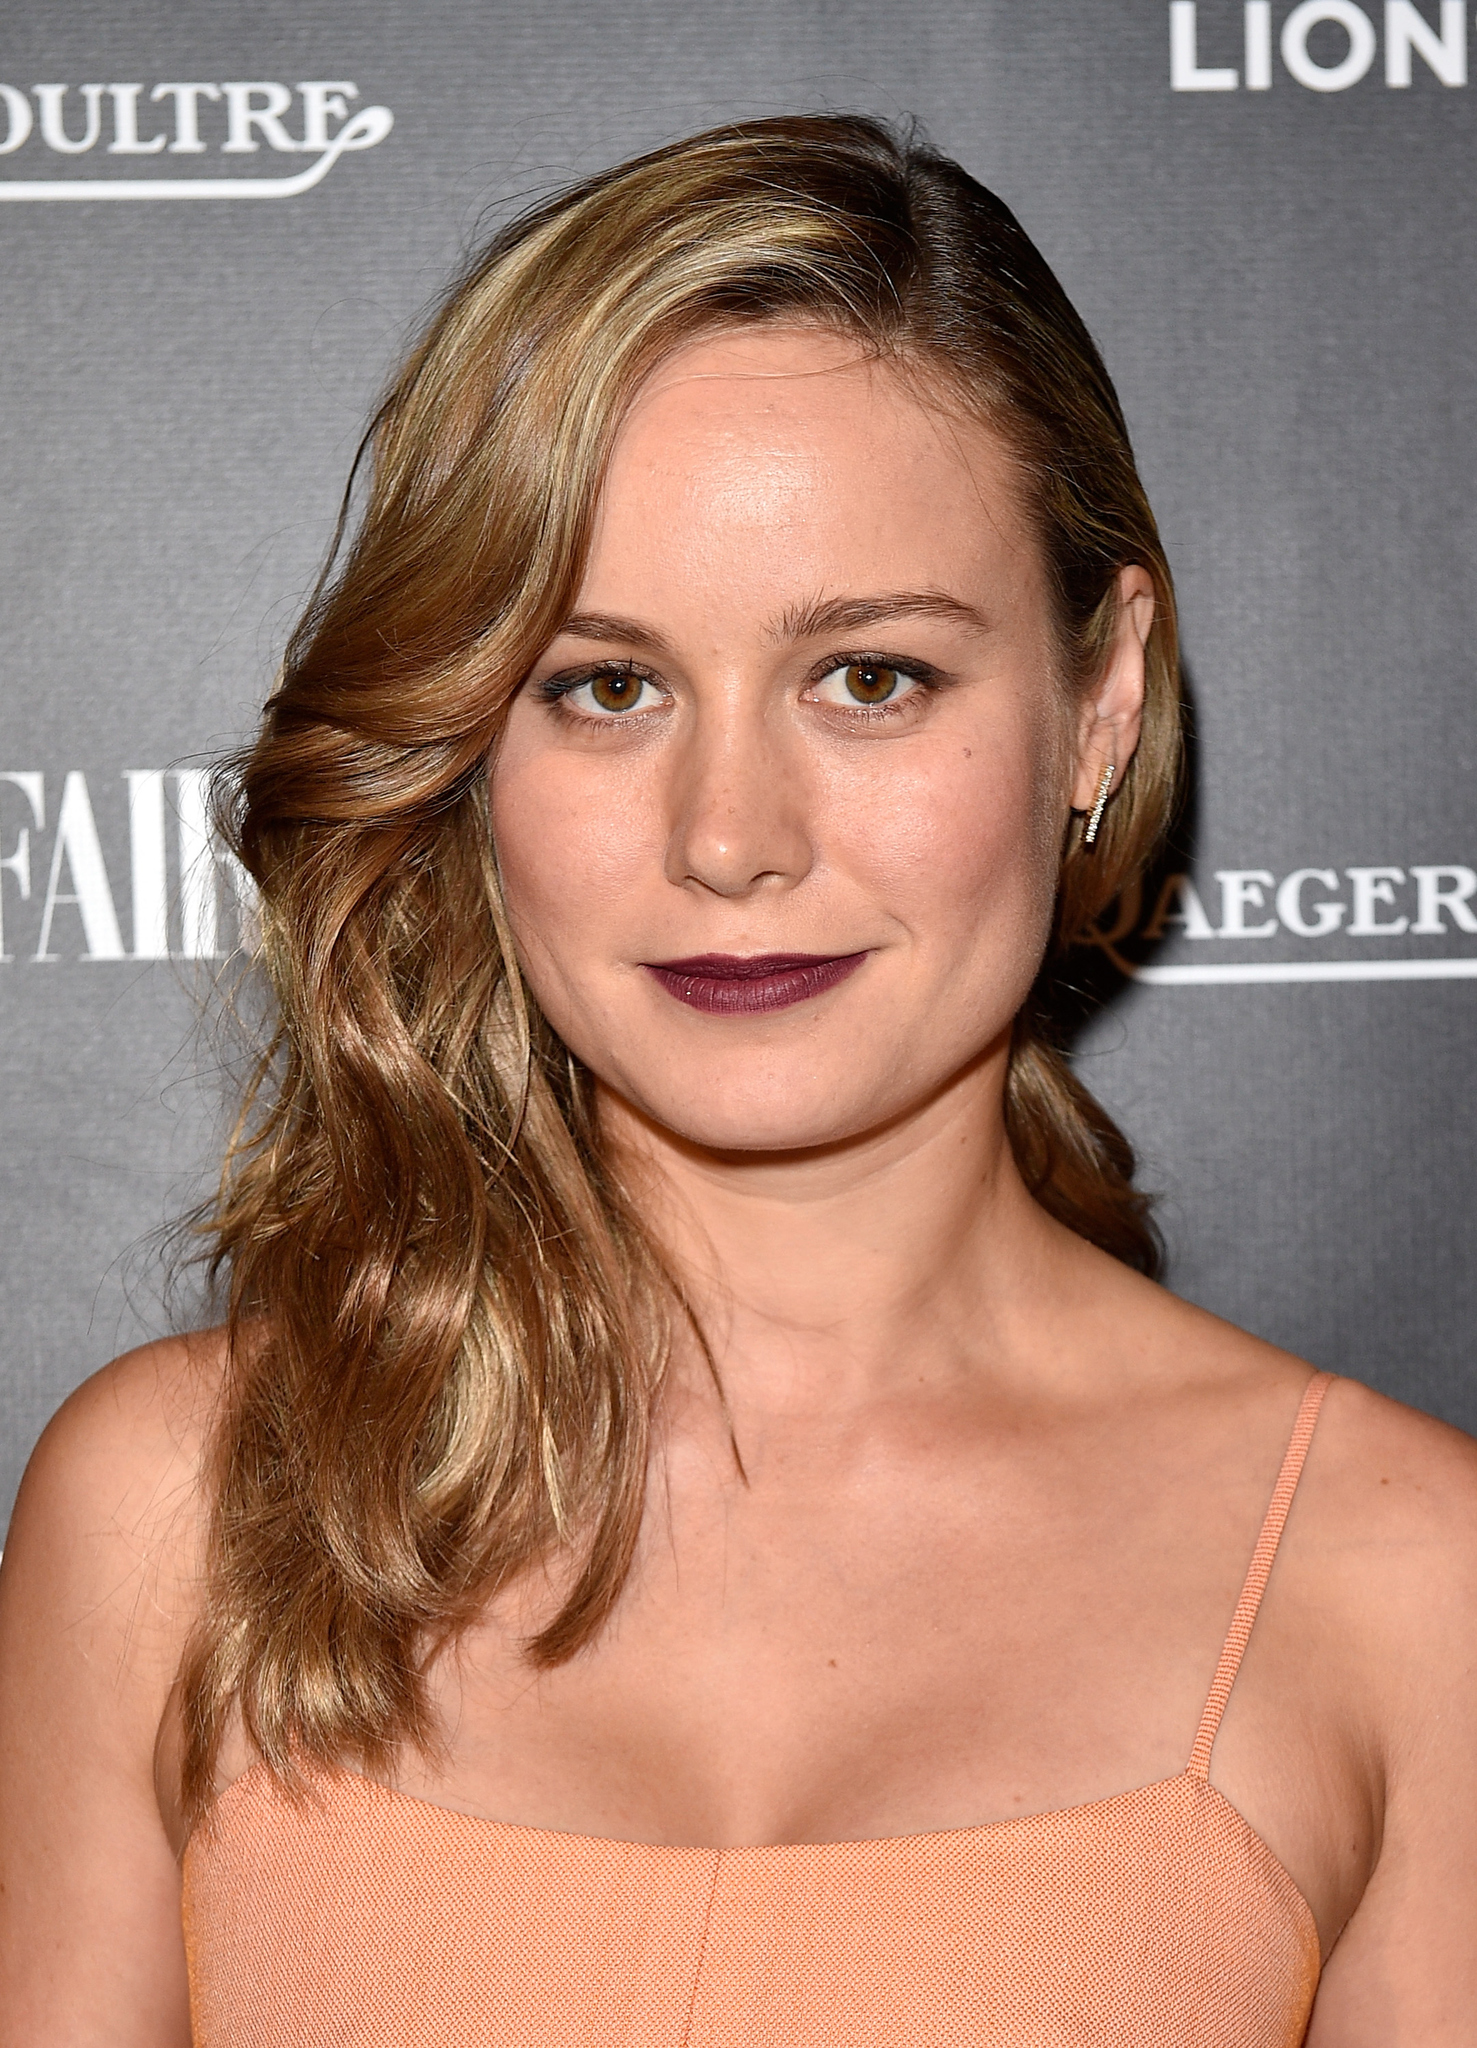 Fotos Brie Larson nudes (41 photo), Topless, Hot, Instagram, cameltoe 2015